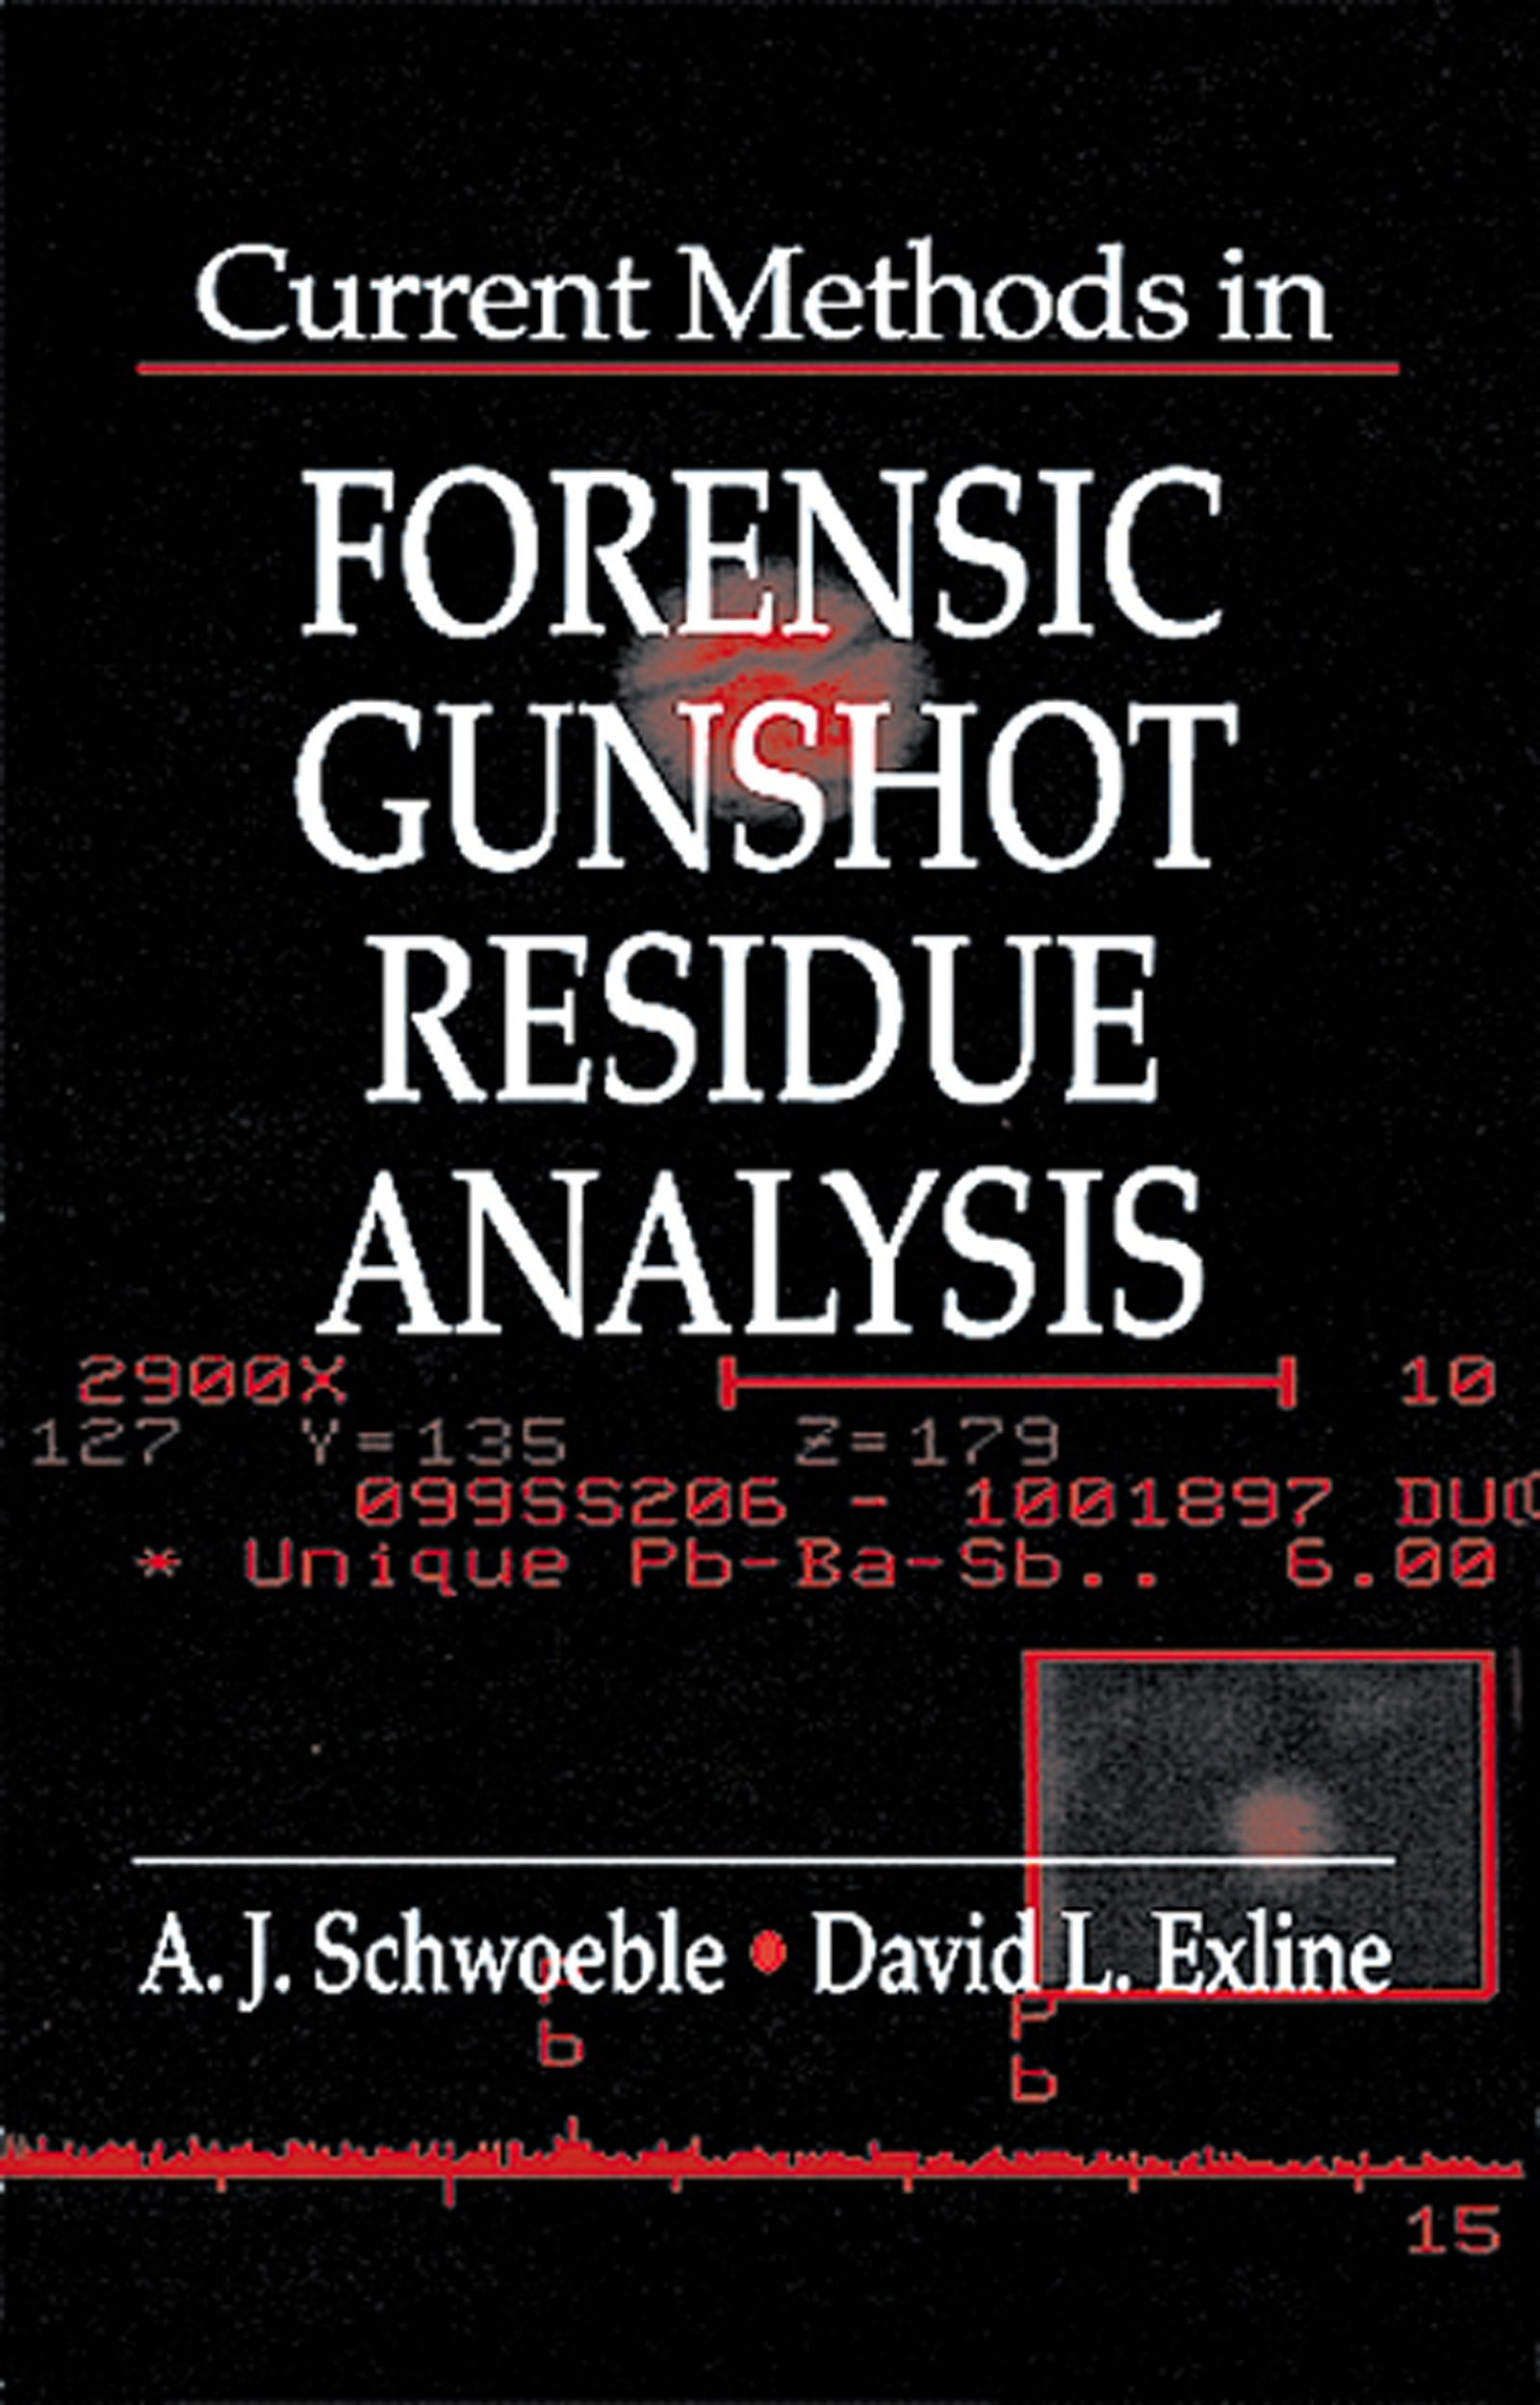 Current Methods In Forensic Gunshot Residue Analysis Forensicnetbase Kindle Edition By Schwoeble A J Exline David L Politics Social Sciences Kindle Ebooks Amazon Com